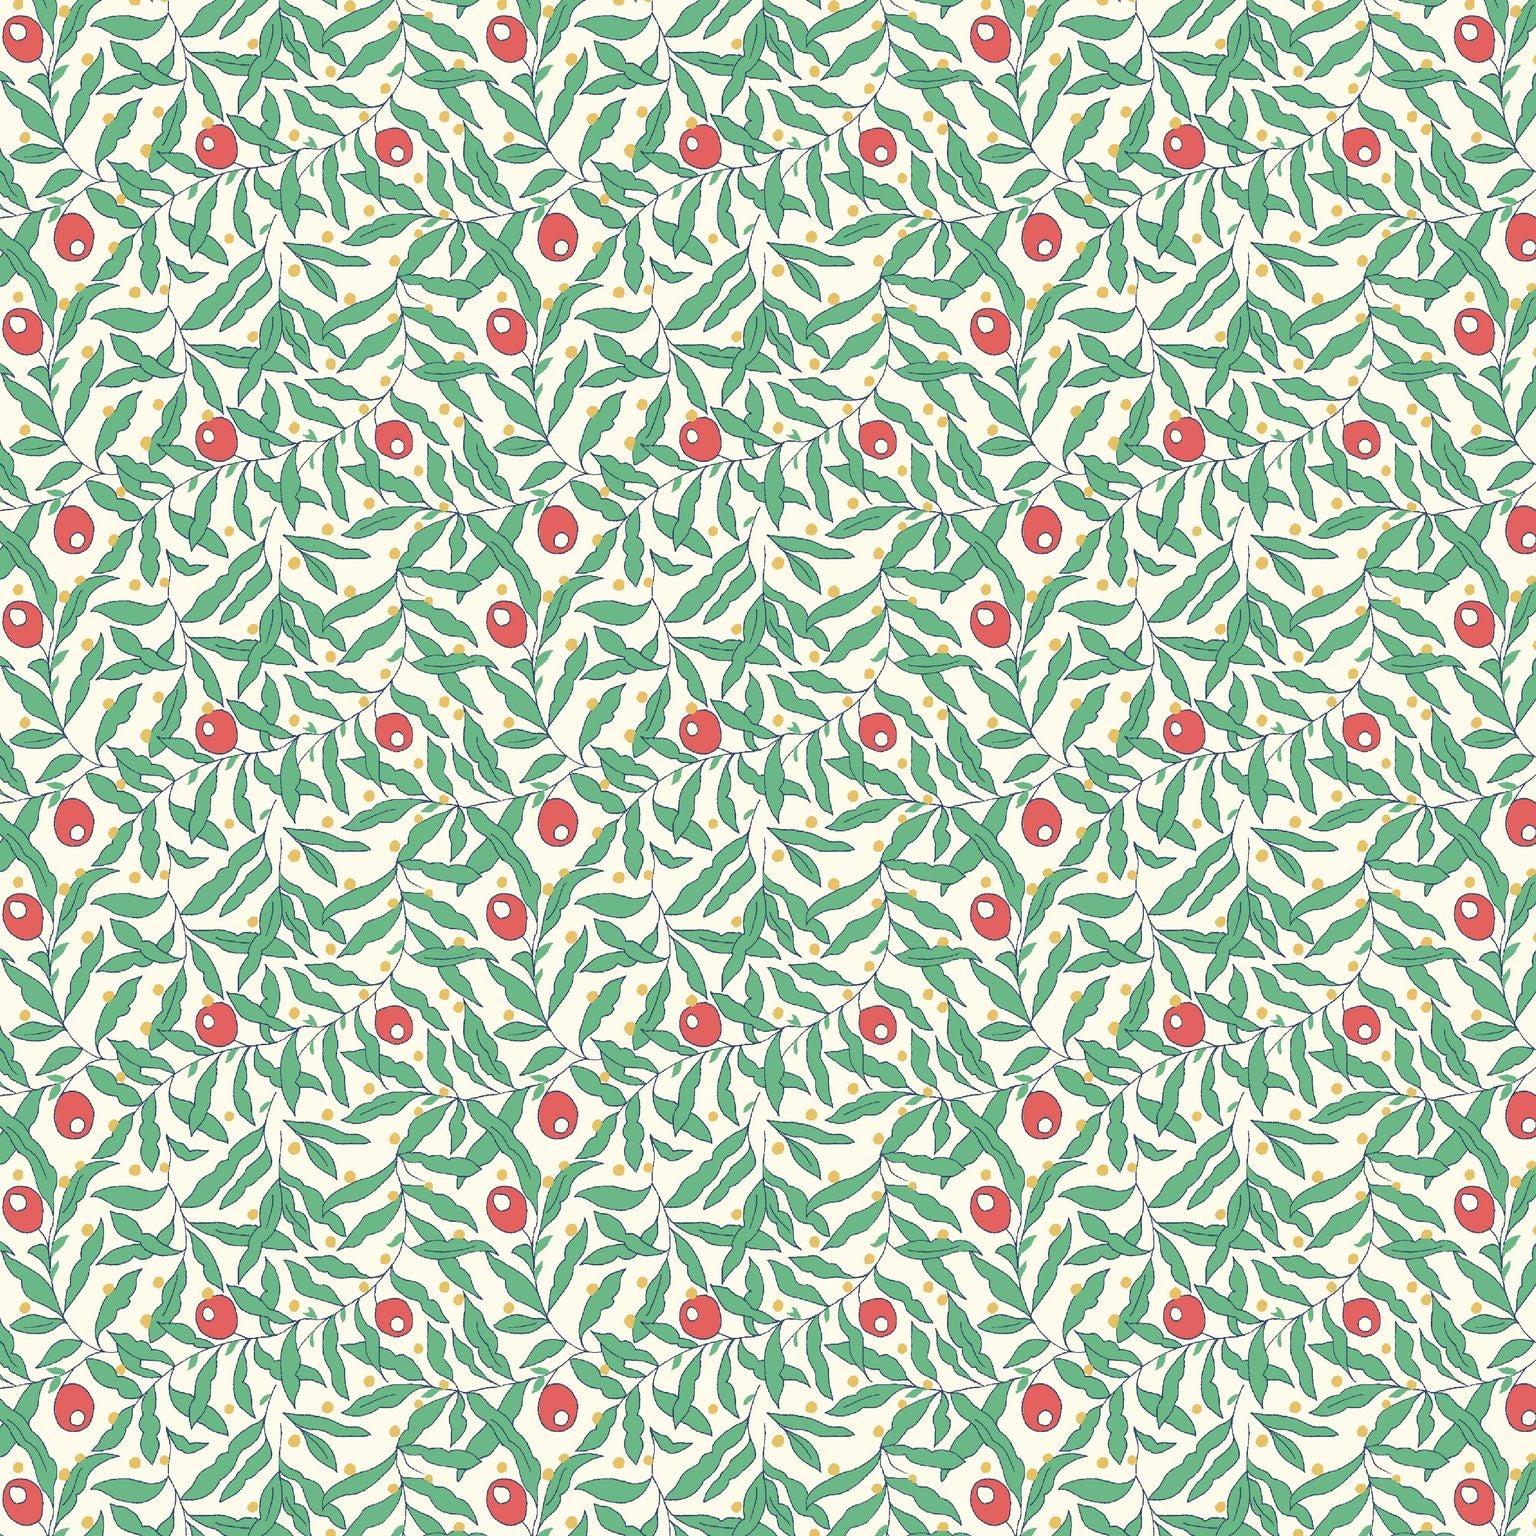 A simple but classic design of small scattered berries and dense leaves, reminiscent of a snowy winter scene. The holiday Berries pattern was inspired by a Liberty archive design originally created in 1979.